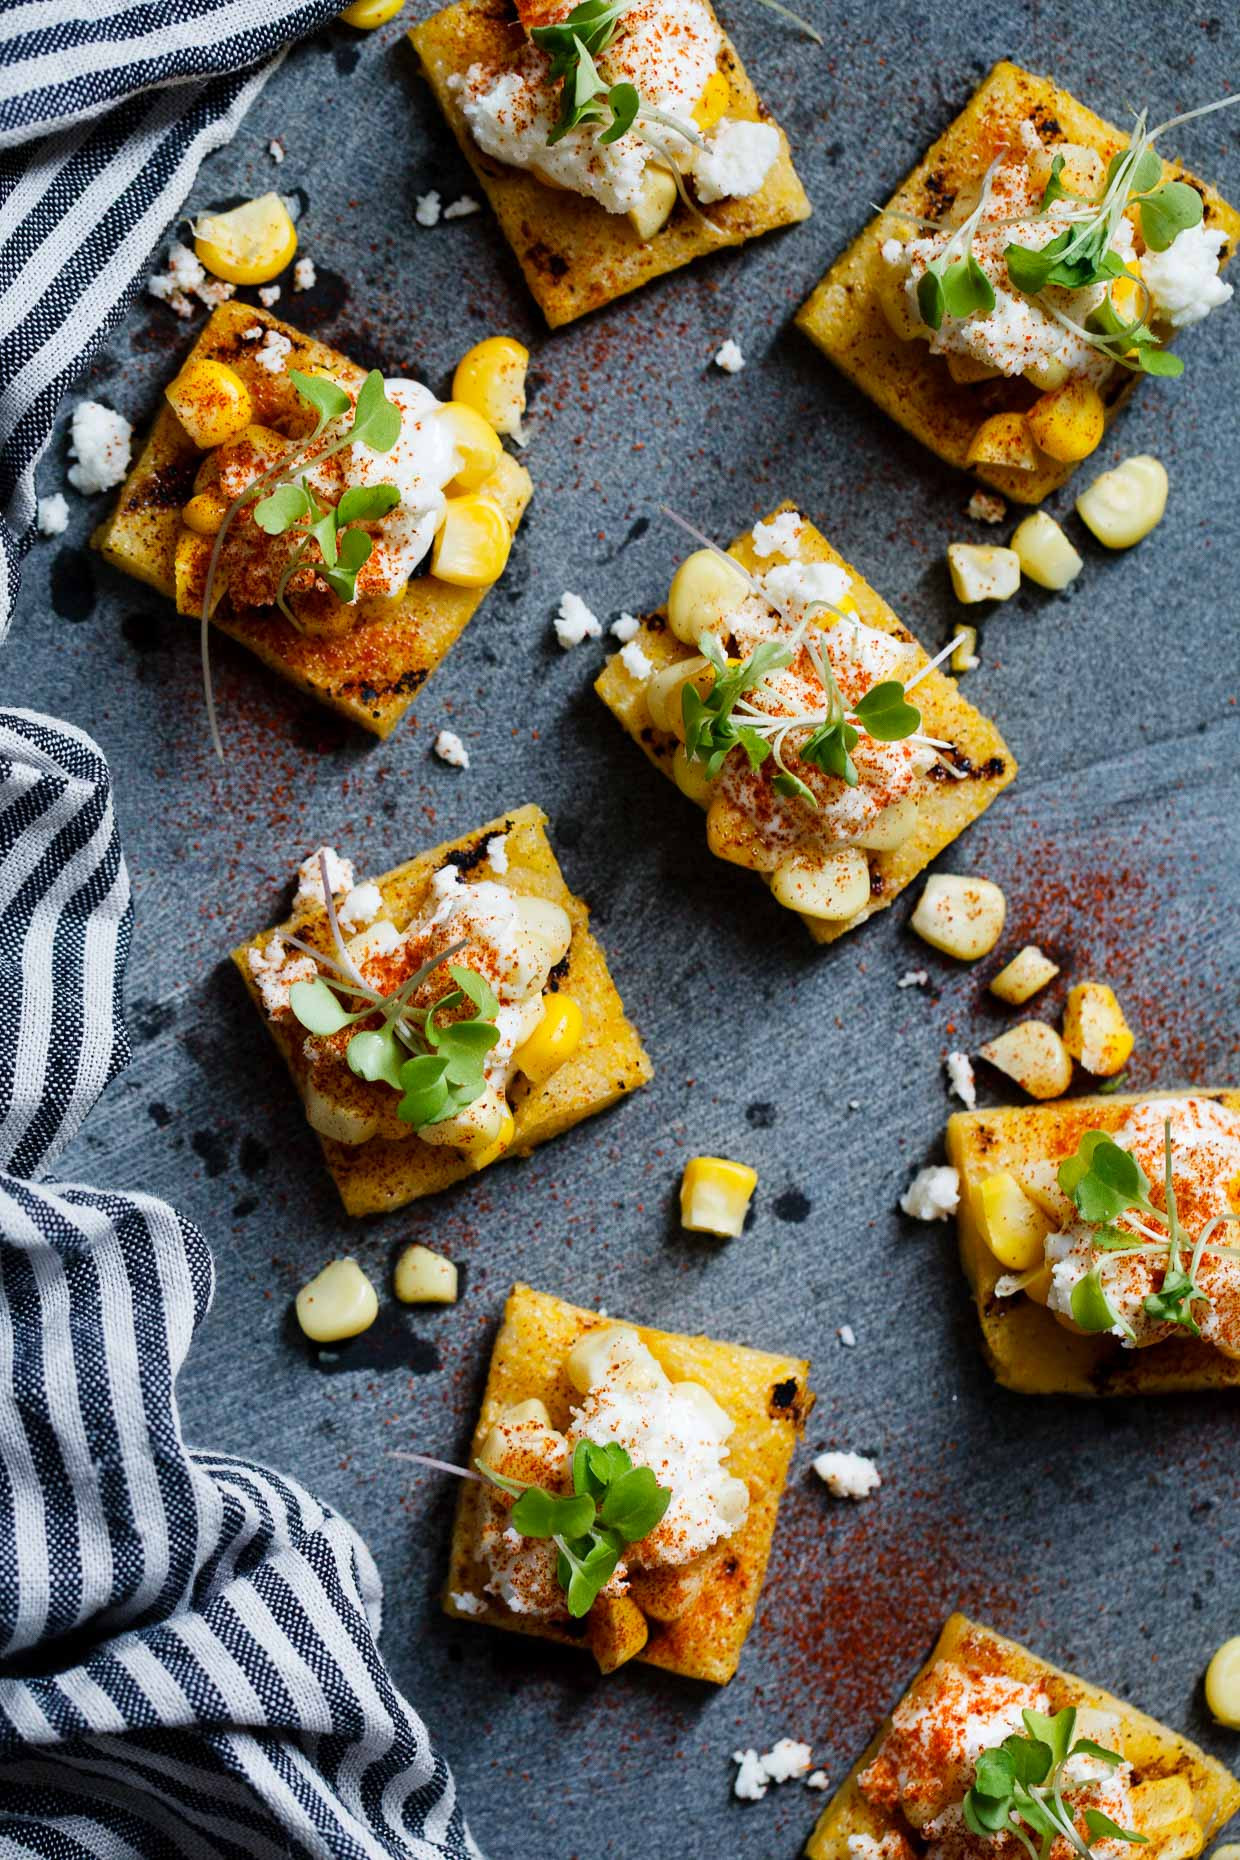 Gluten Free Appetizer Recipes  Gluten Free Appetizers that are Perfect for Your Party